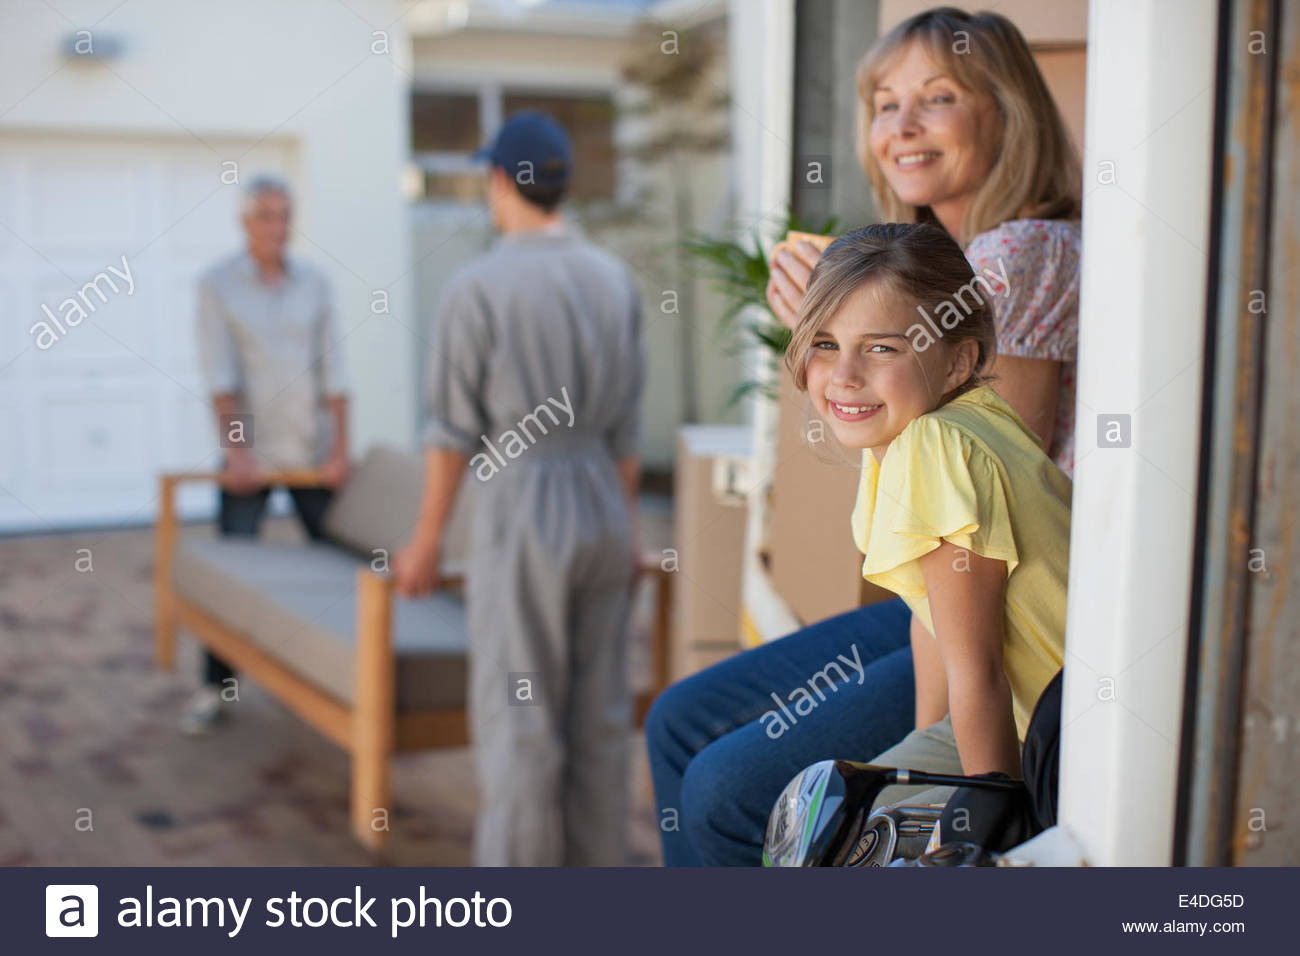 Family moving into new home - Stock Image